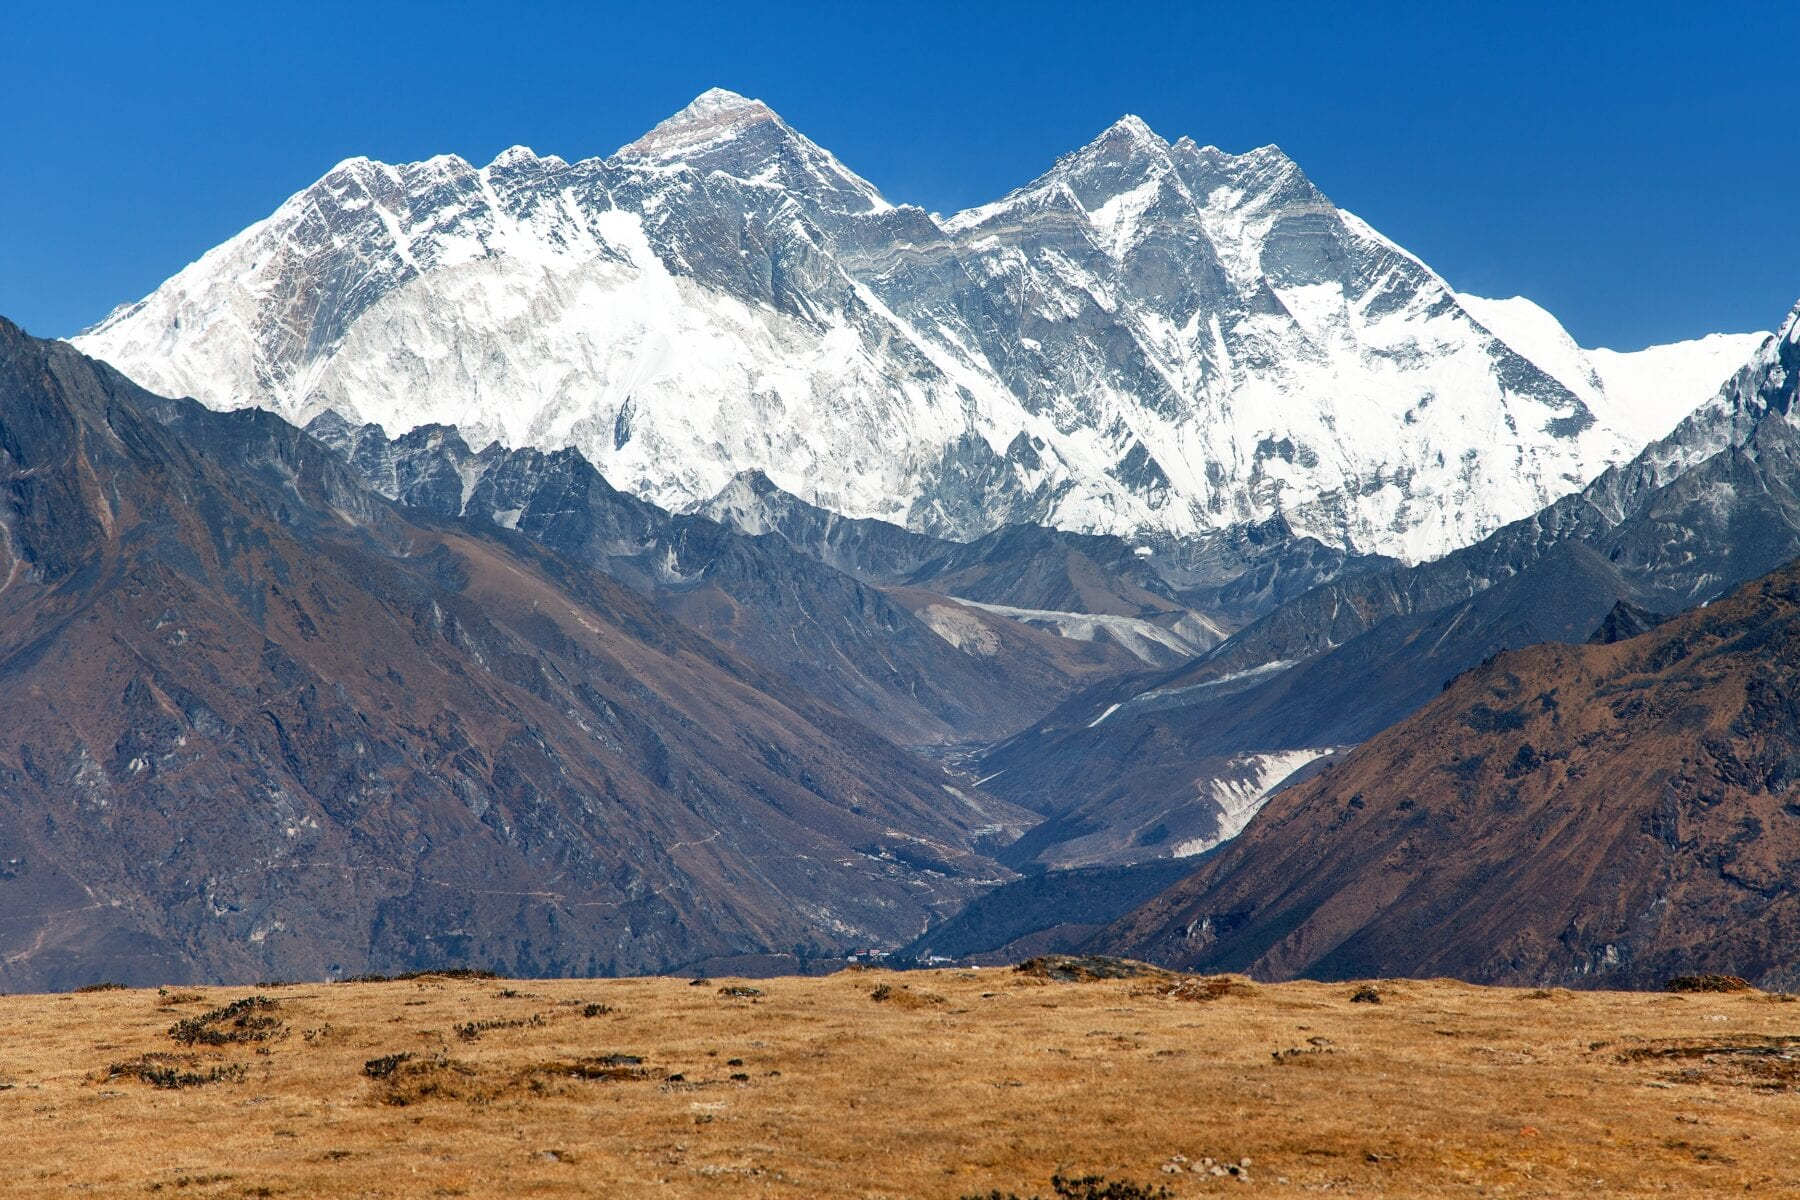 Mount Everest, Nuptse en Lhotse